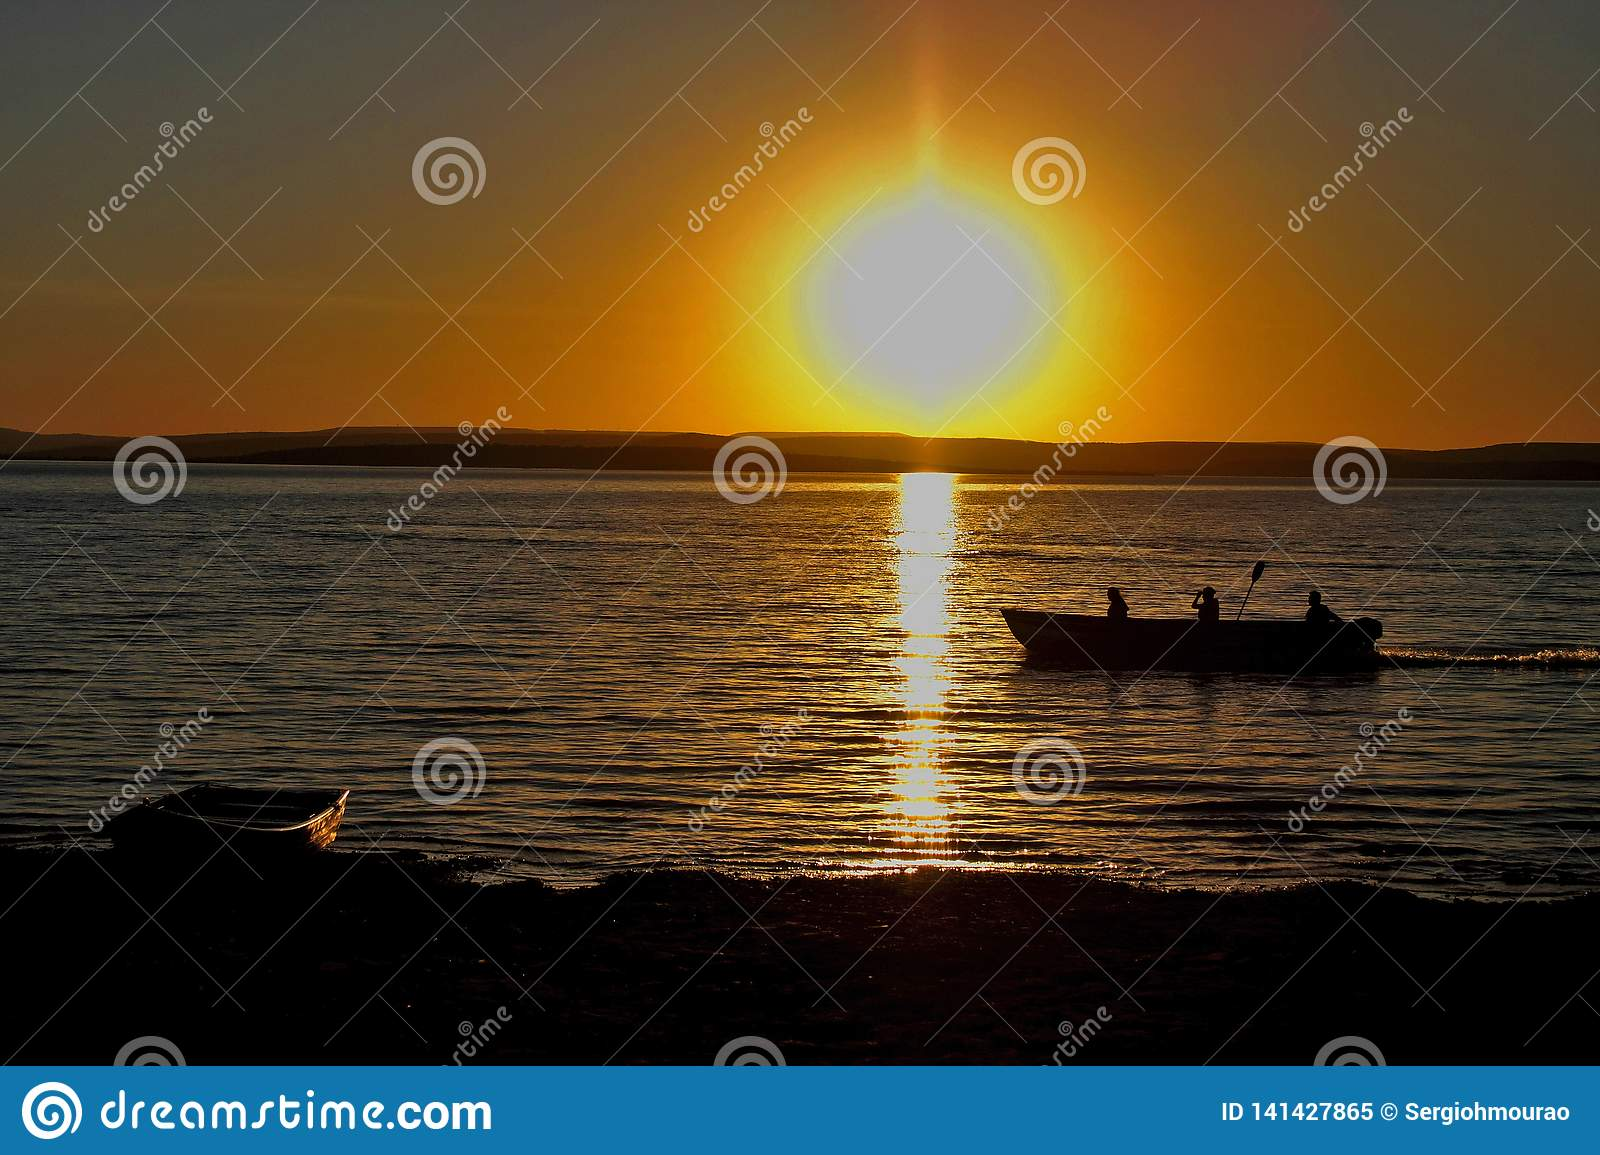 Fishermen at dusk on the São Francisco River